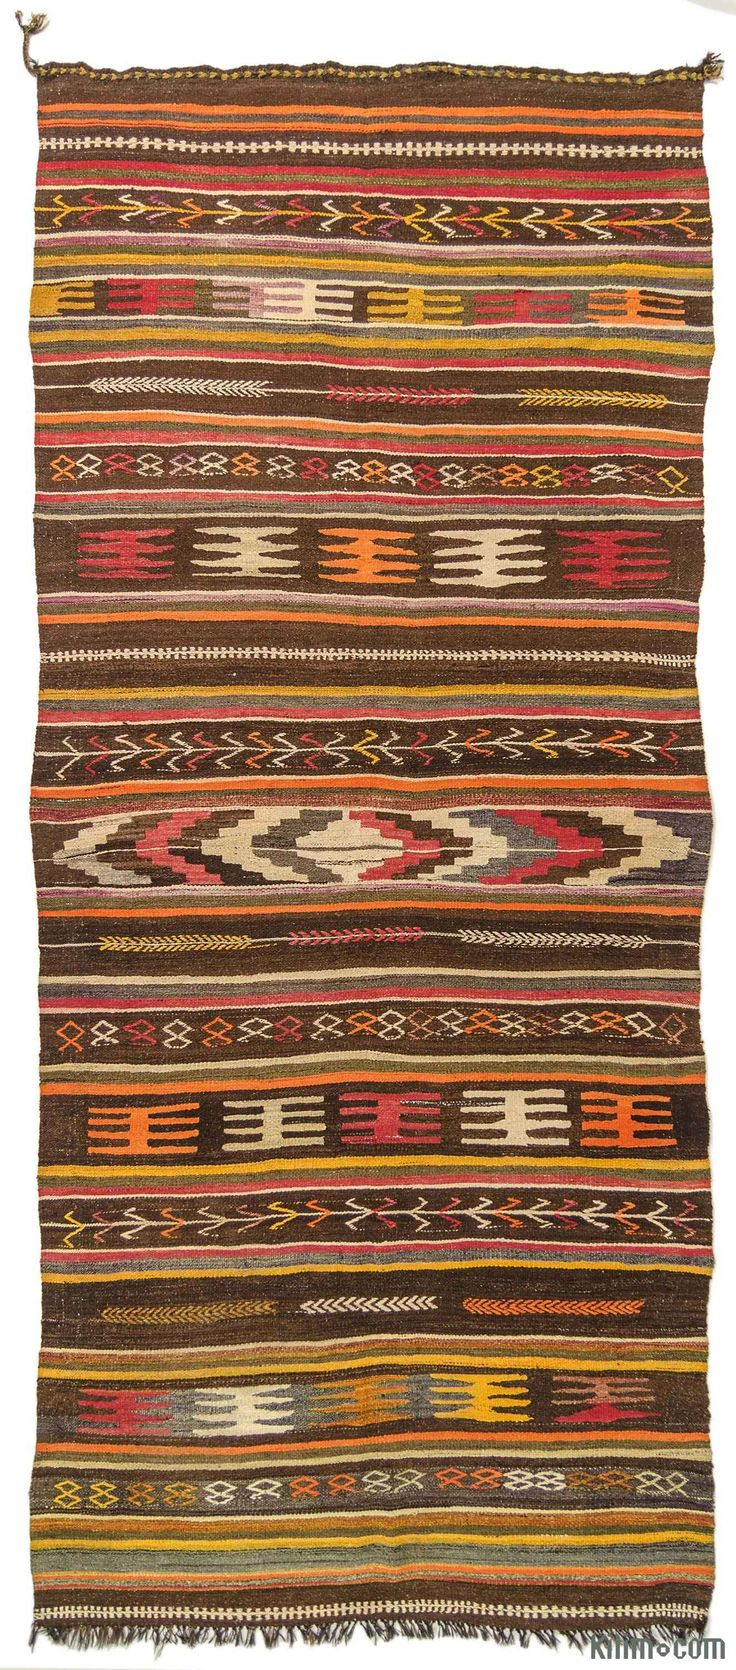 Vintage kilim rug handwoven in Turkey in 1960's. This tribal kilim is in very good condition.